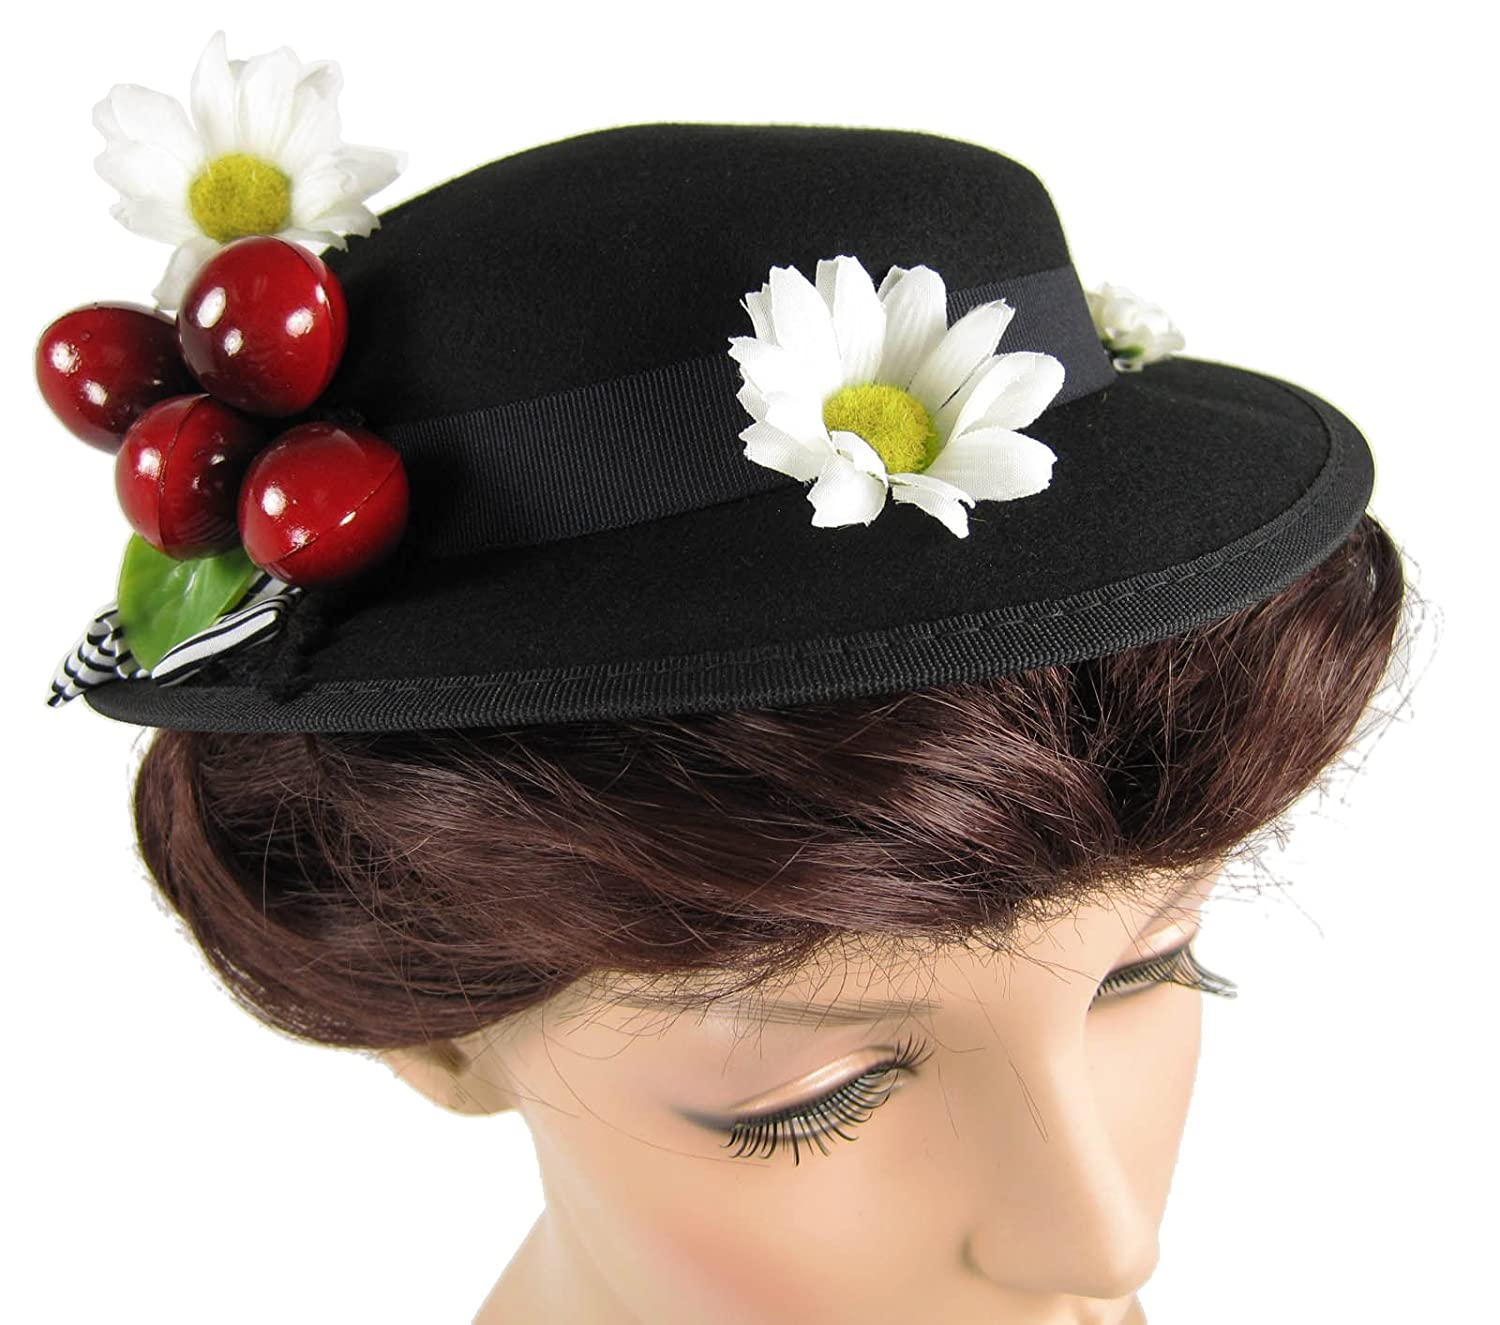 Edwardian Hats, Titanic Hats, Tea Party Hats Womens English Nanny Poppins Costume Hat $48.99 AT vintagedancer.com